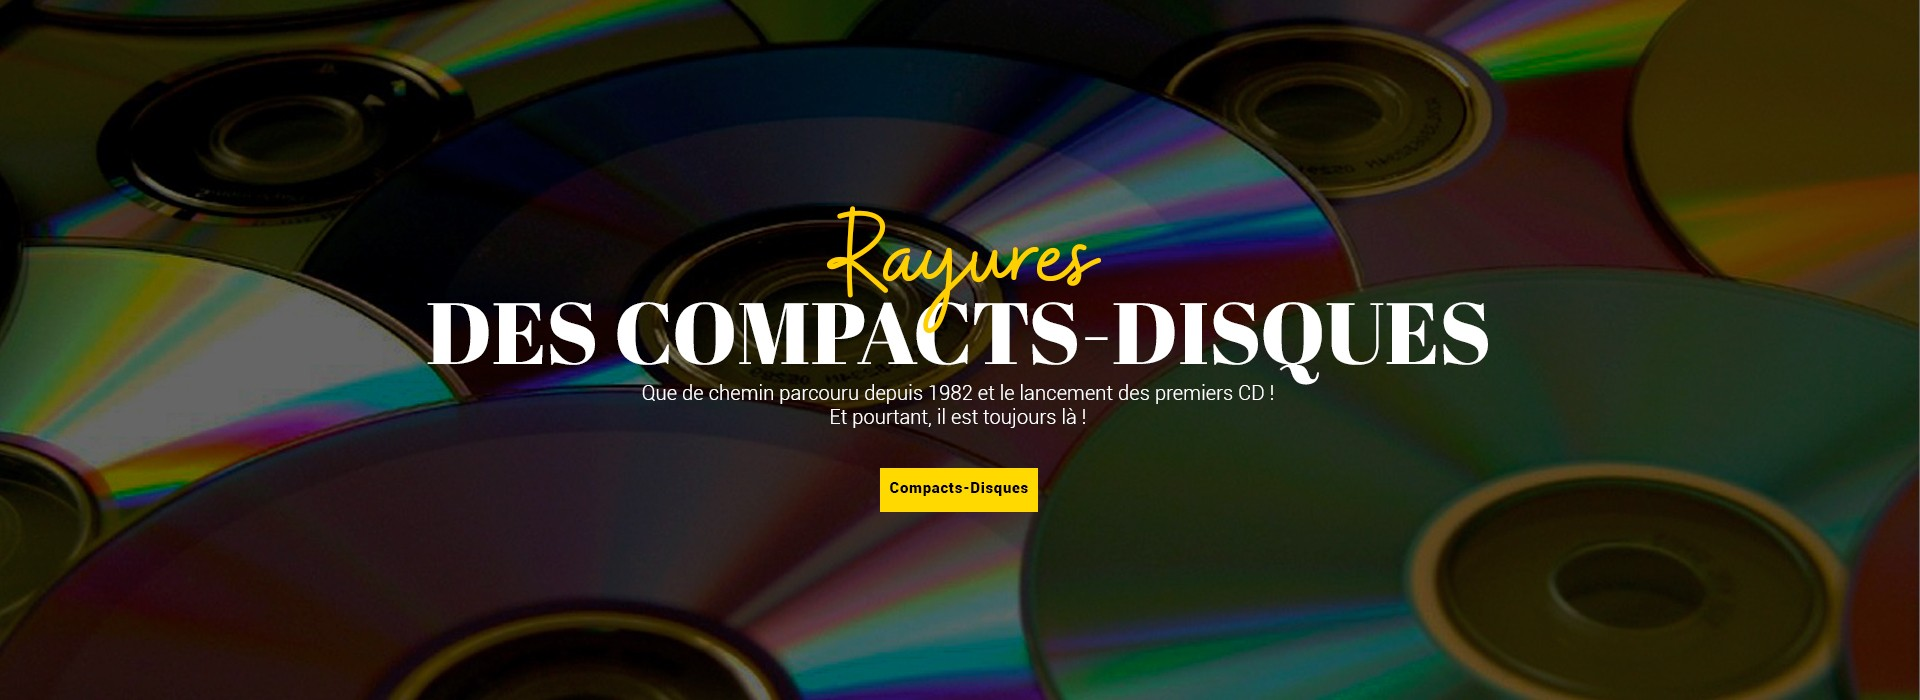 compacts disques